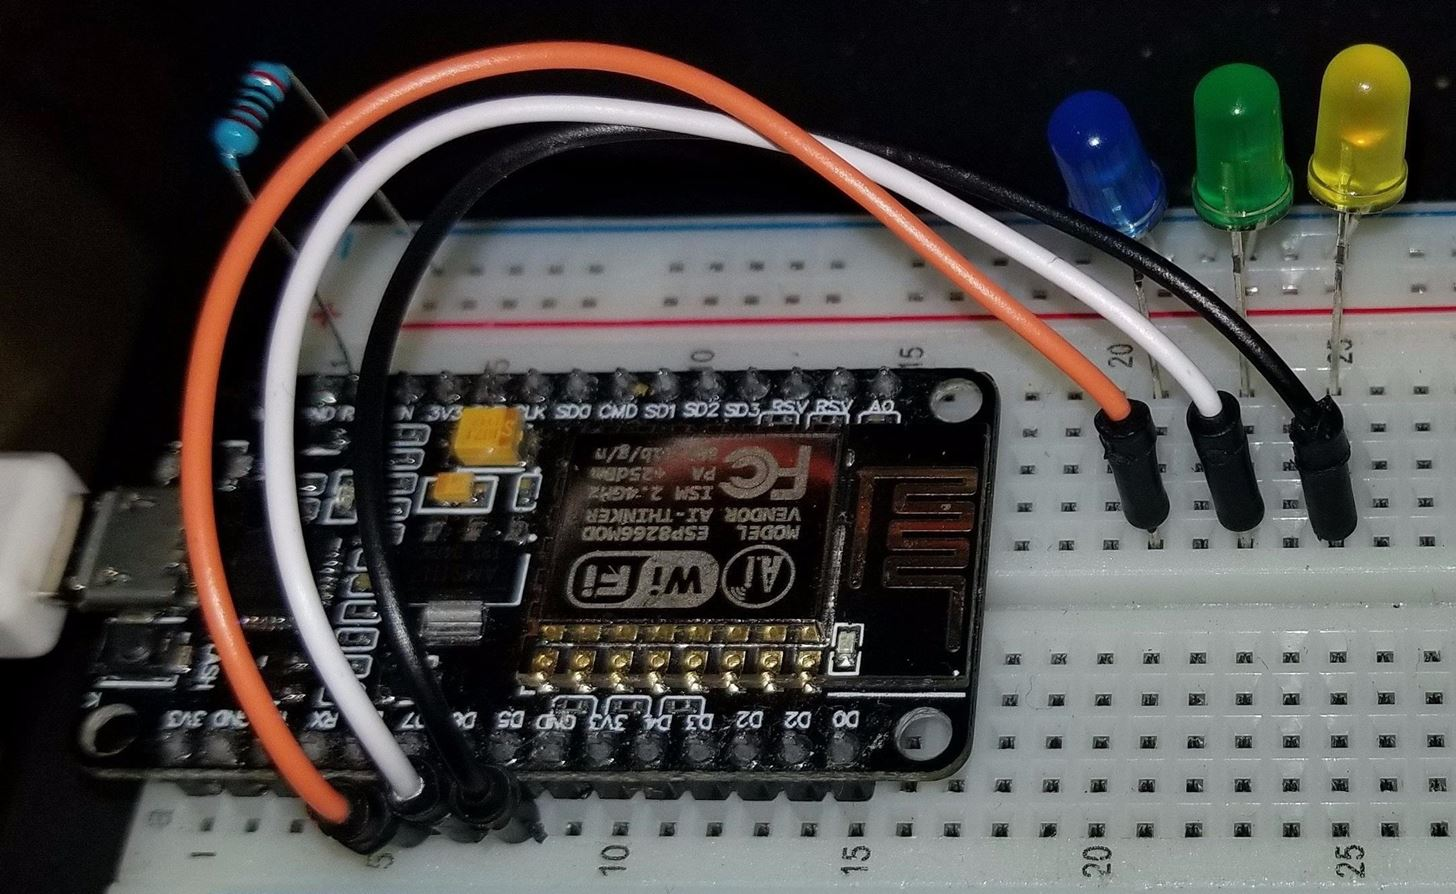 How to tell when a device is near the ESP8266 Friend Detector